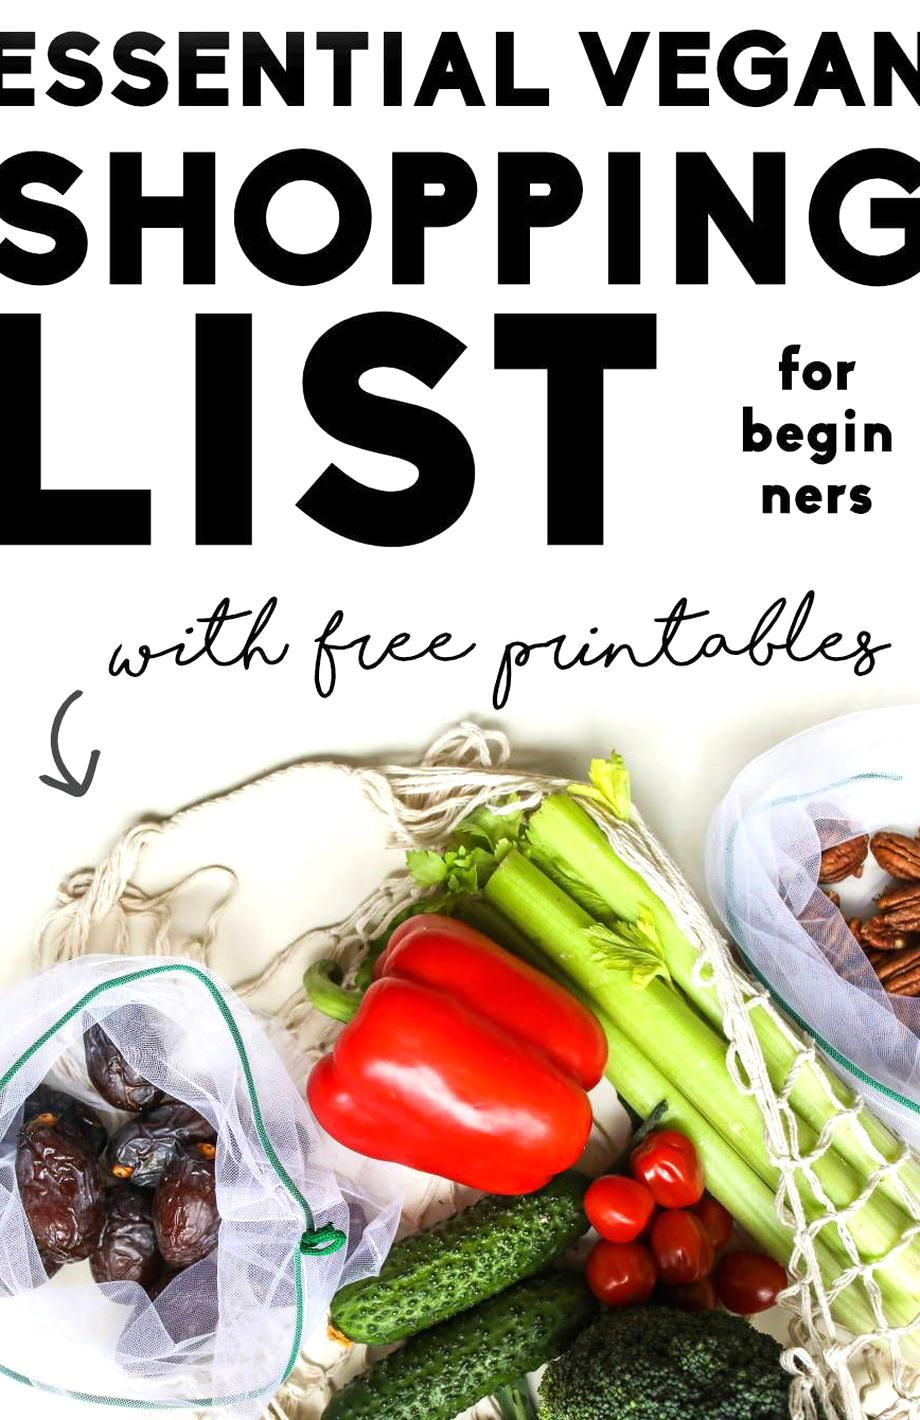 Looking for the ultimate vegan grocery list that features